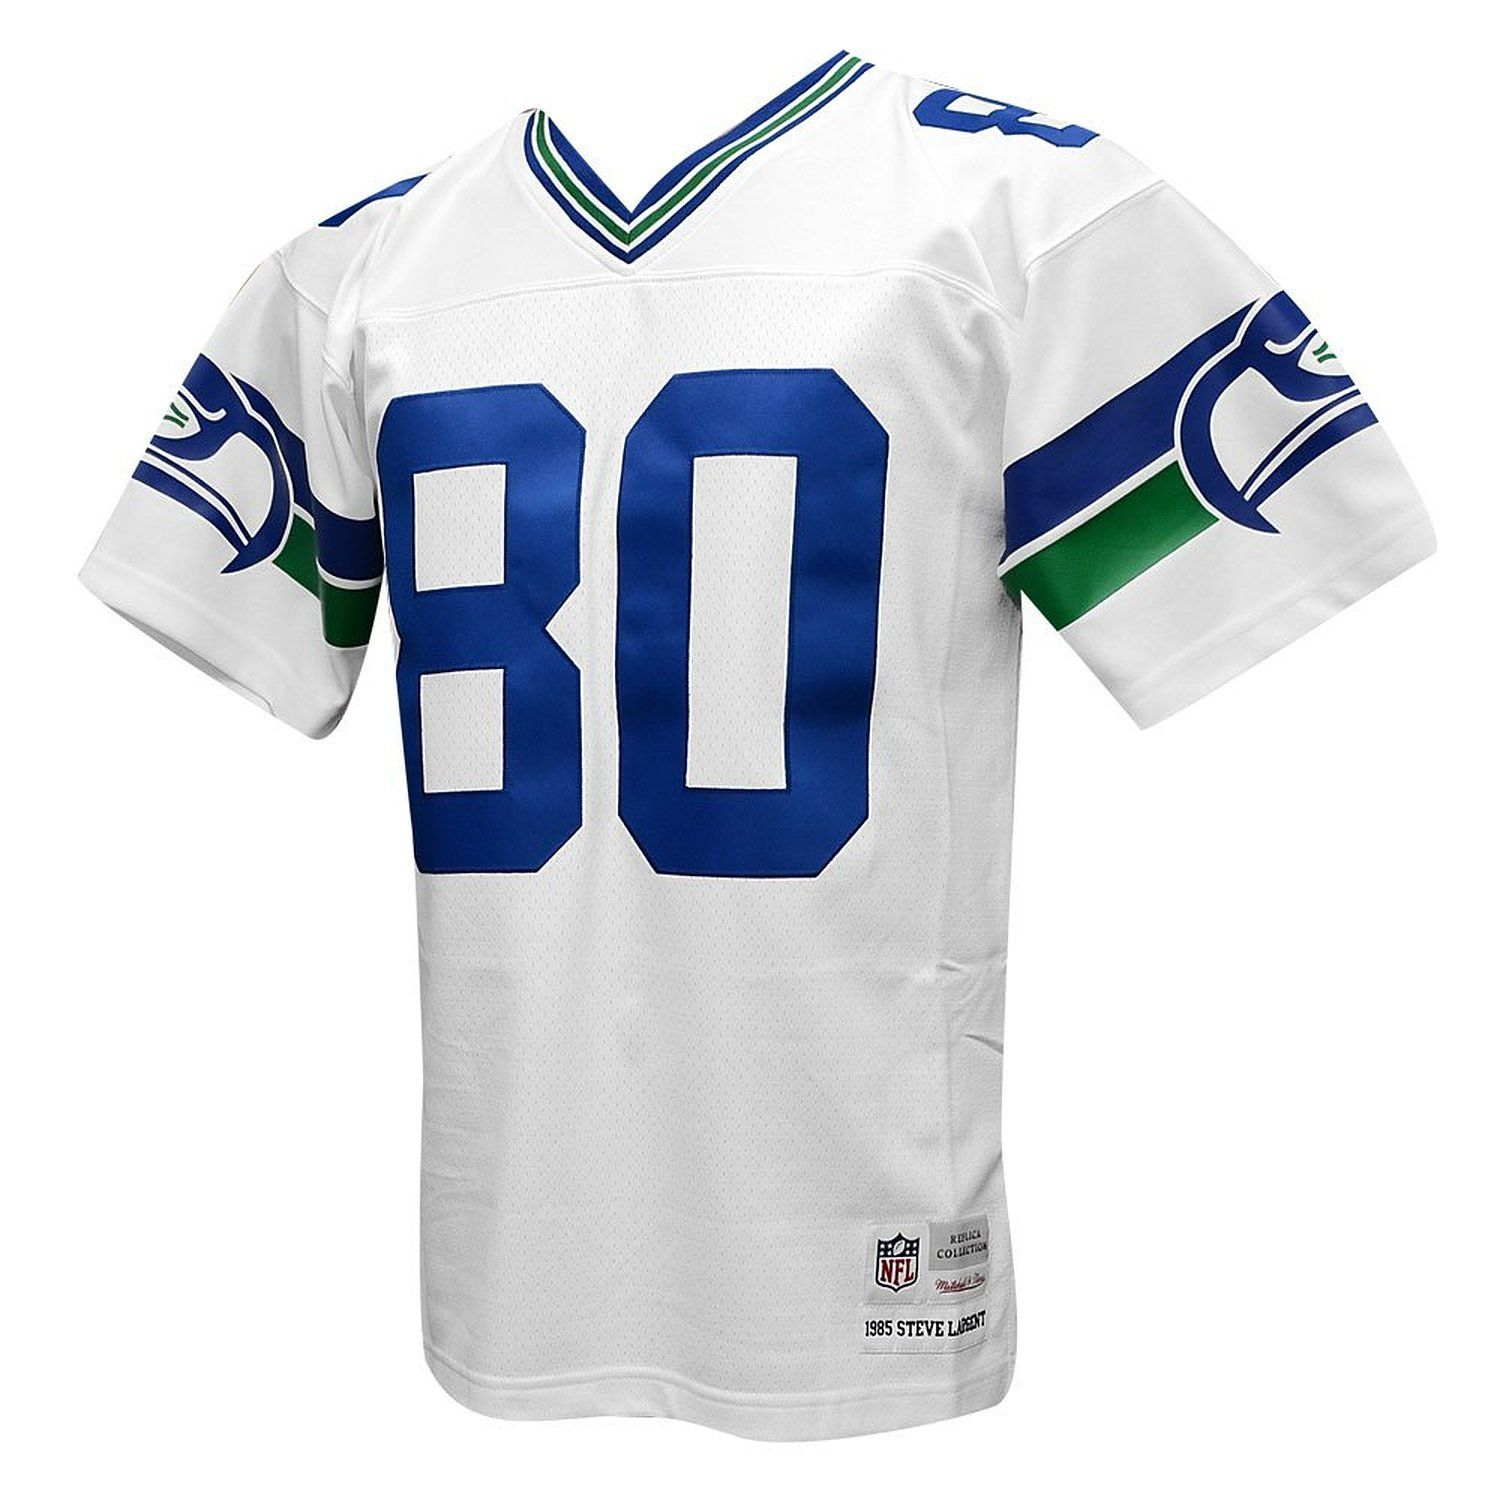 731839e22 Seattle Seahawks Mitchell   Ness 1985 Steve Largent  80 Replica Throwback  Jersey- White